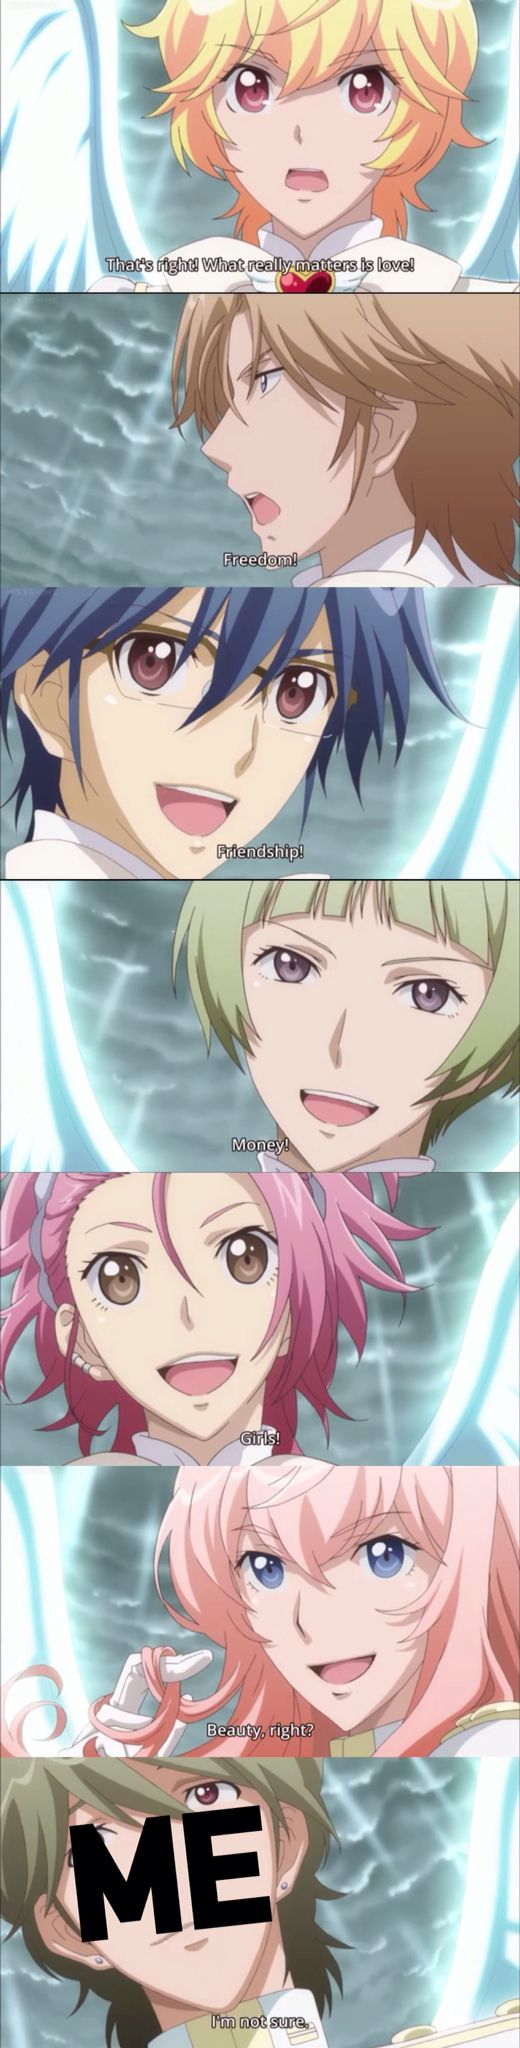 "Cute High Earth Defense Club LOVE! Episode 12 relatable post. Only problem, they left out my favorite. ""For Binan HighSchool to remain Binzn HighSchool!"""